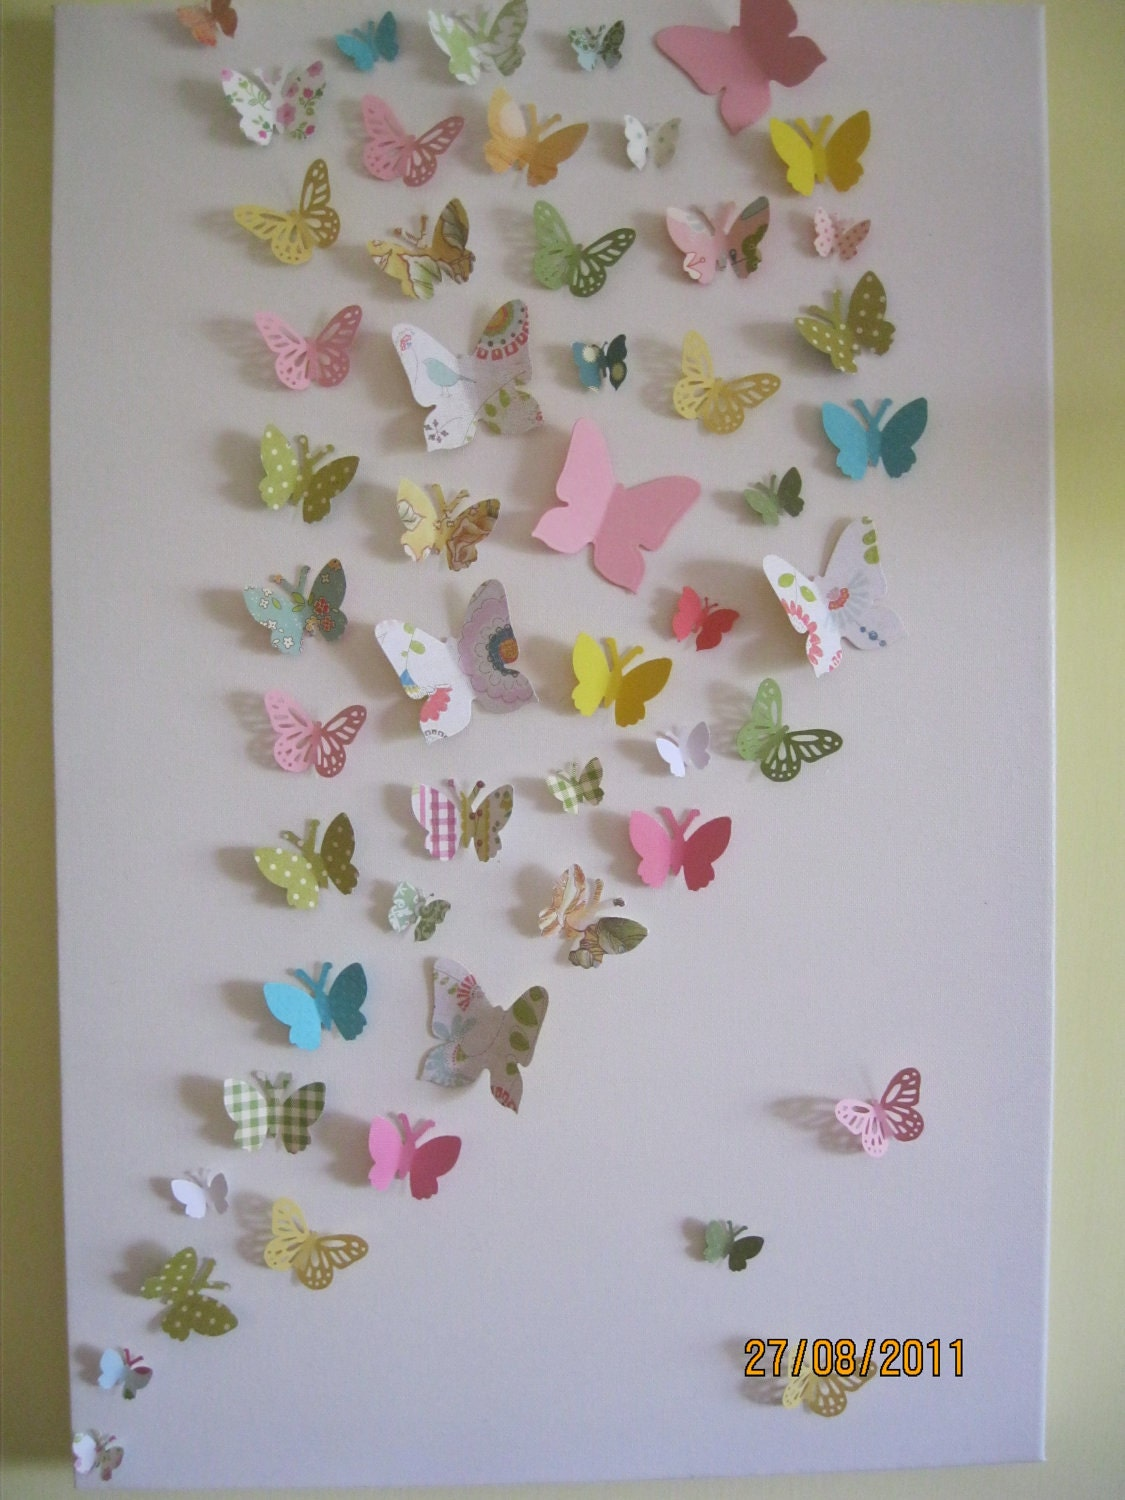 Nursery Wall Decor Butterflies : D butterfly wall art nursery children s teen by